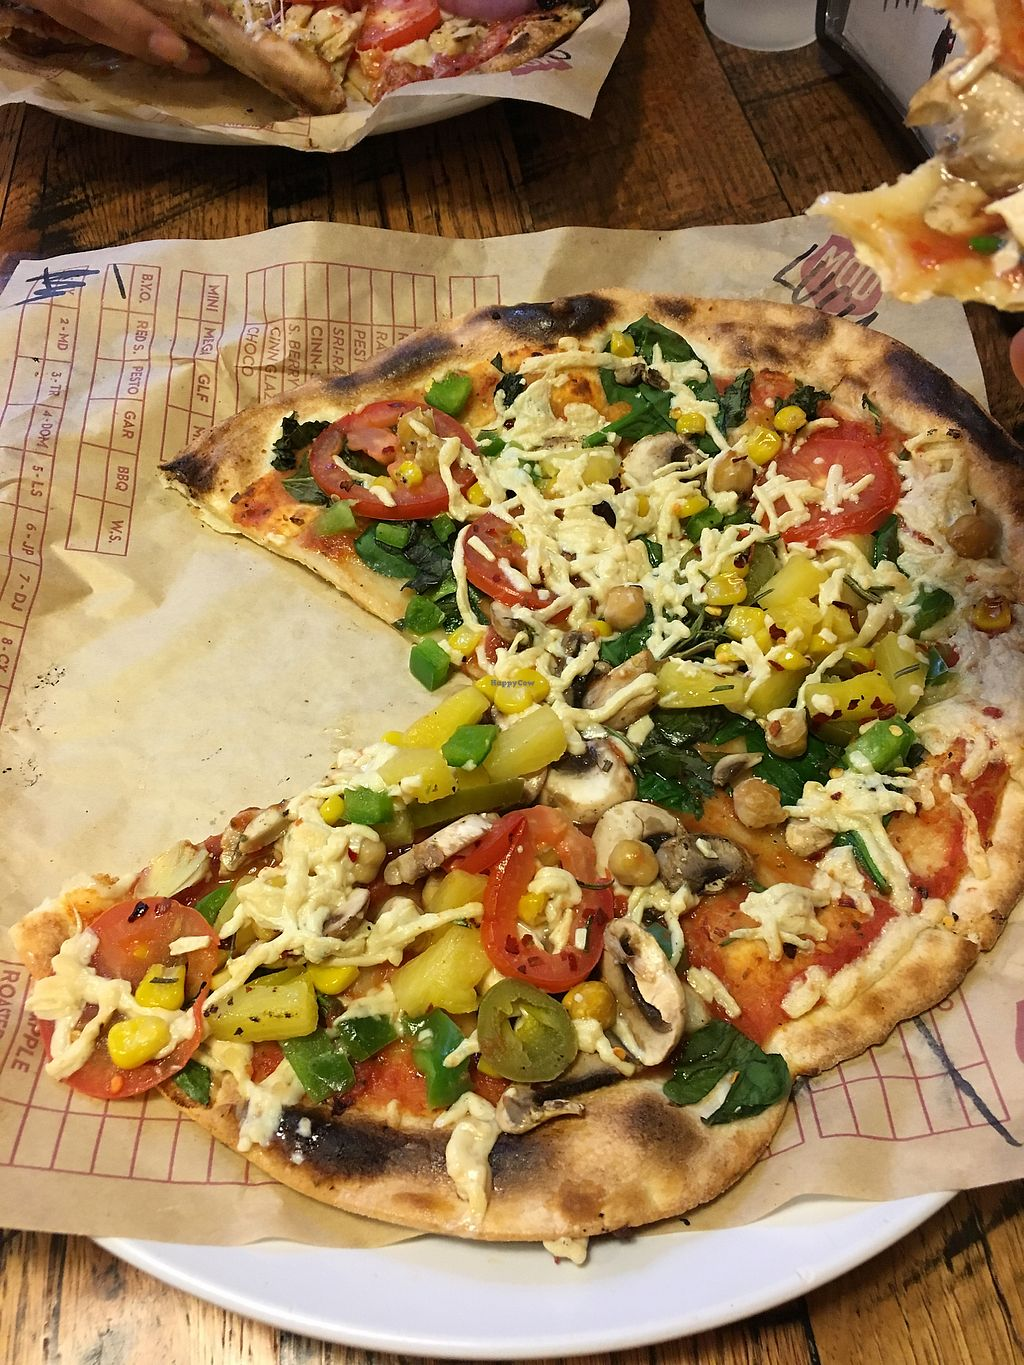 """Photo of Mod Pizza  by <a href=""""/members/profile/ChristineLee"""">ChristineLee</a> <br/>Vegan pizza  <br/> August 8, 2017  - <a href='/contact/abuse/image/78570/290283'>Report</a>"""